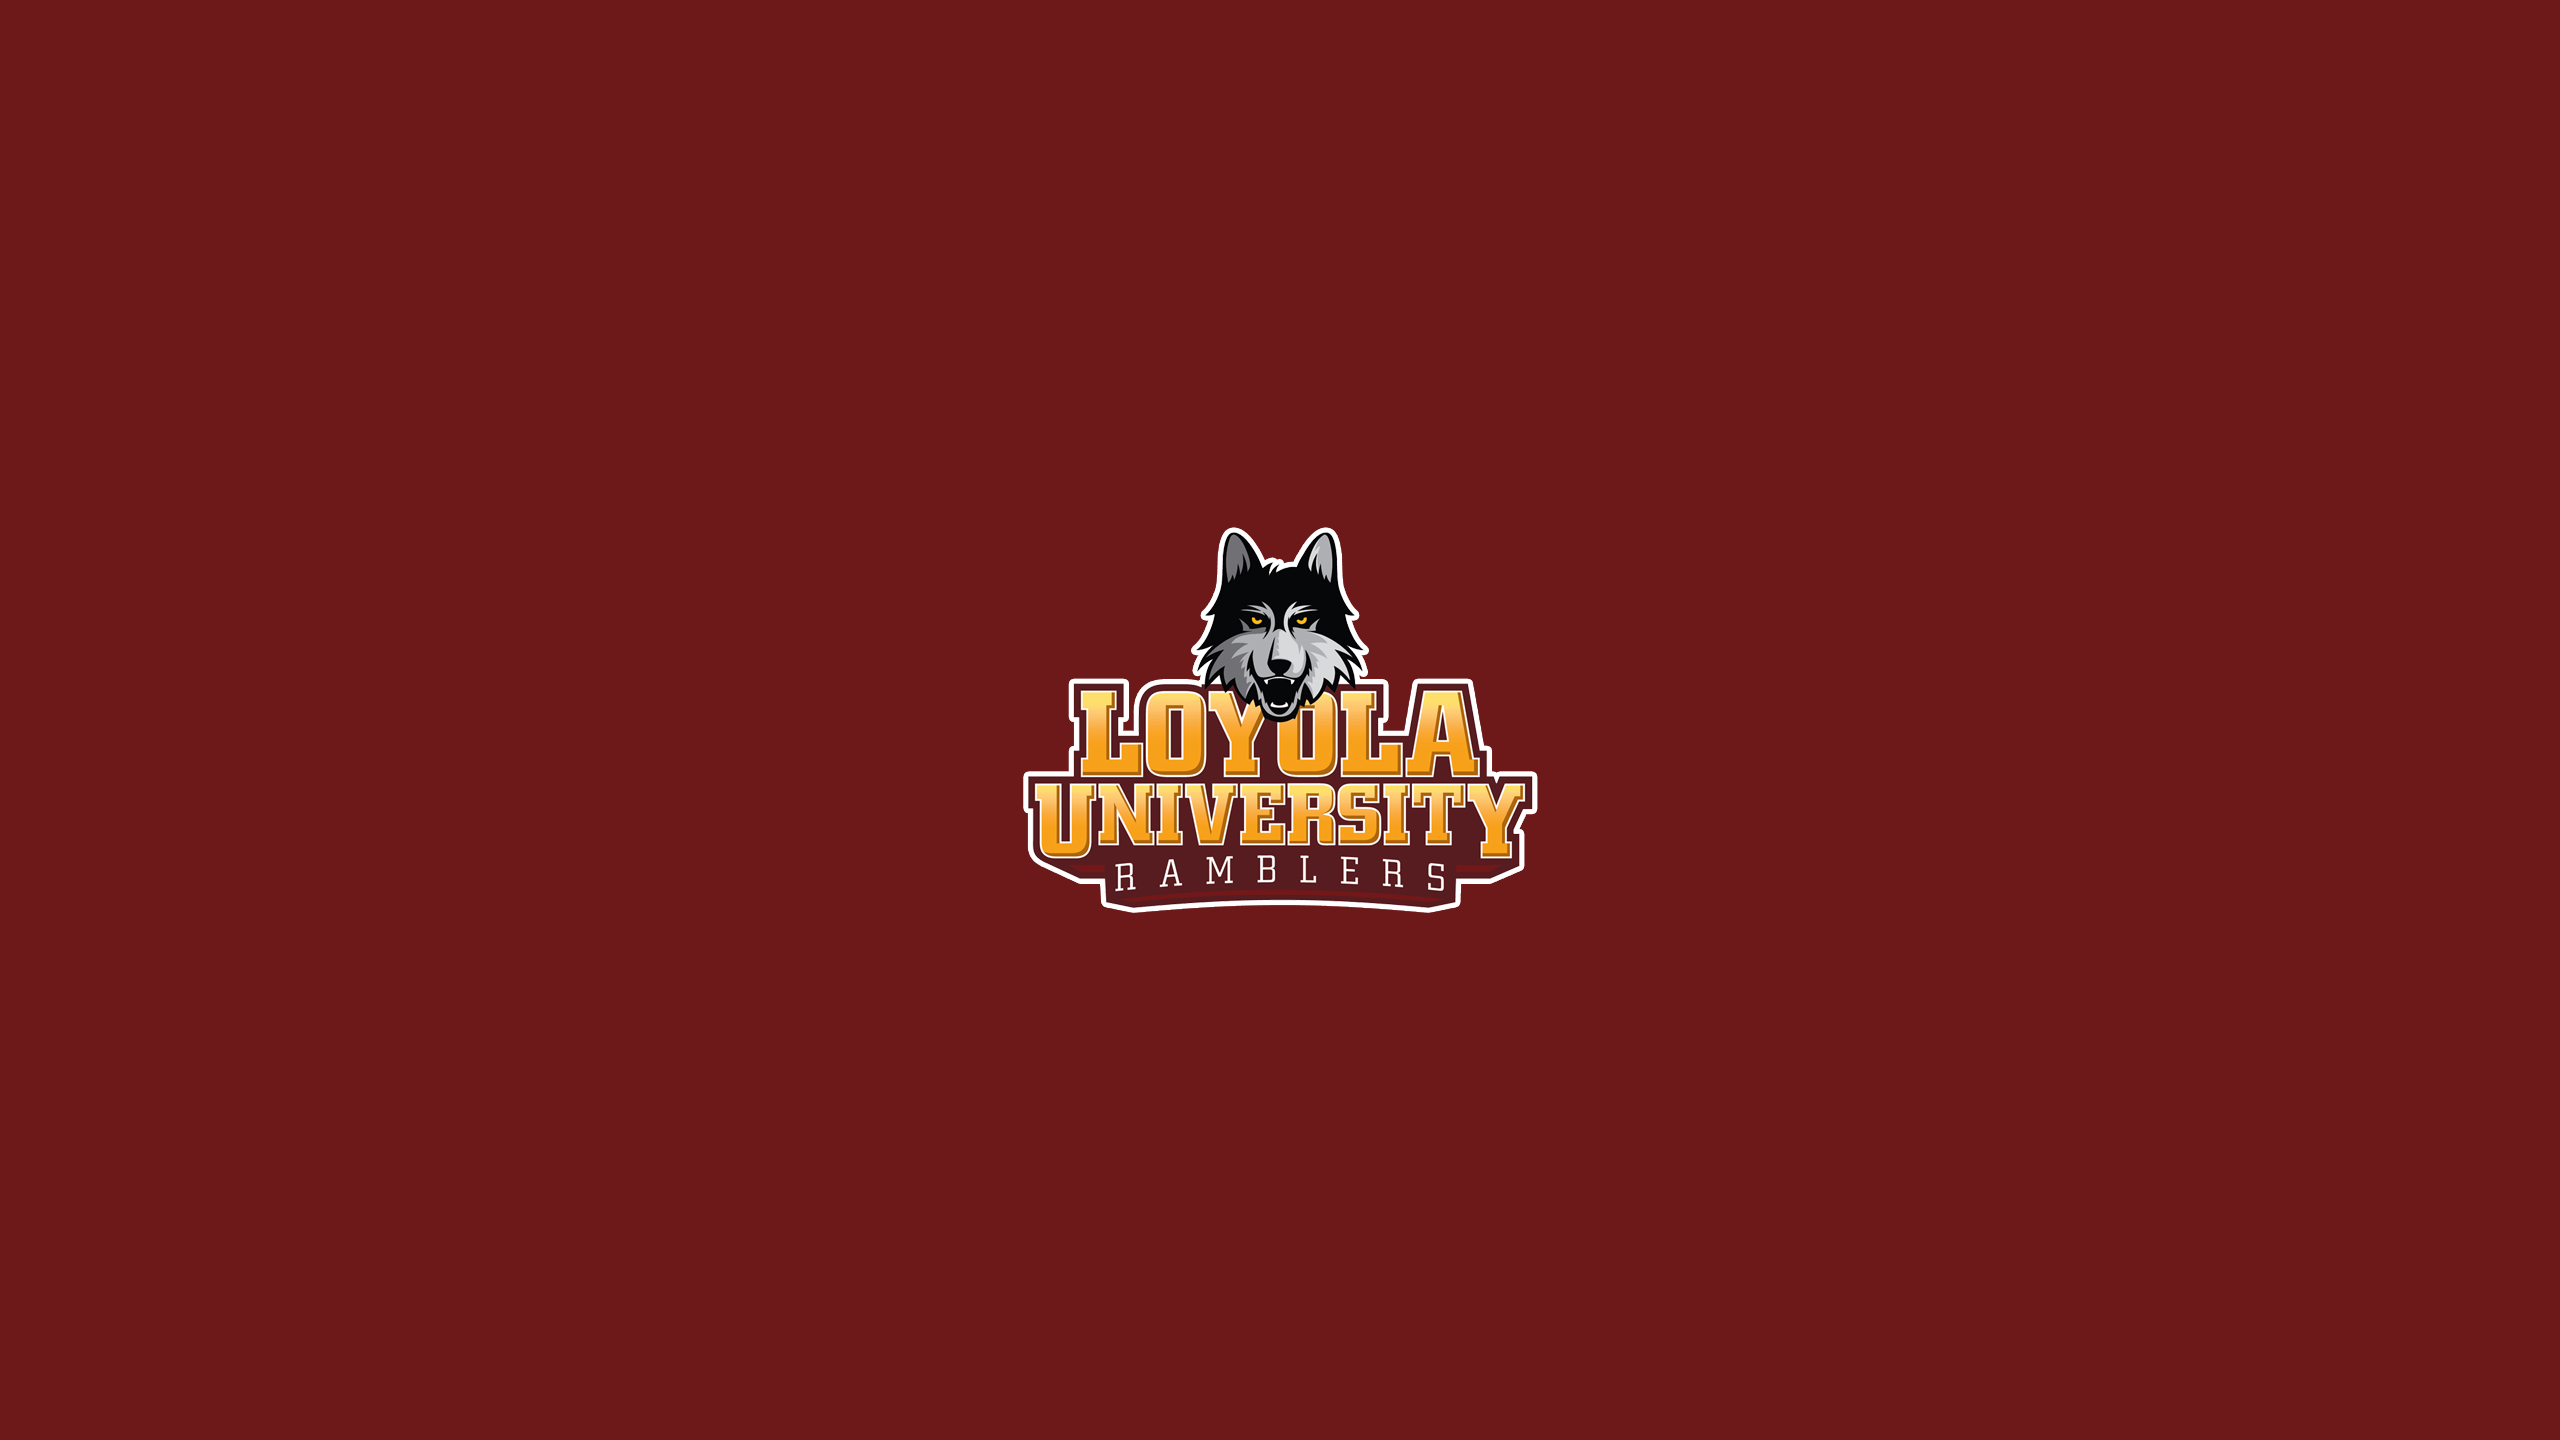 Loyola (Chicago) University Ramblers